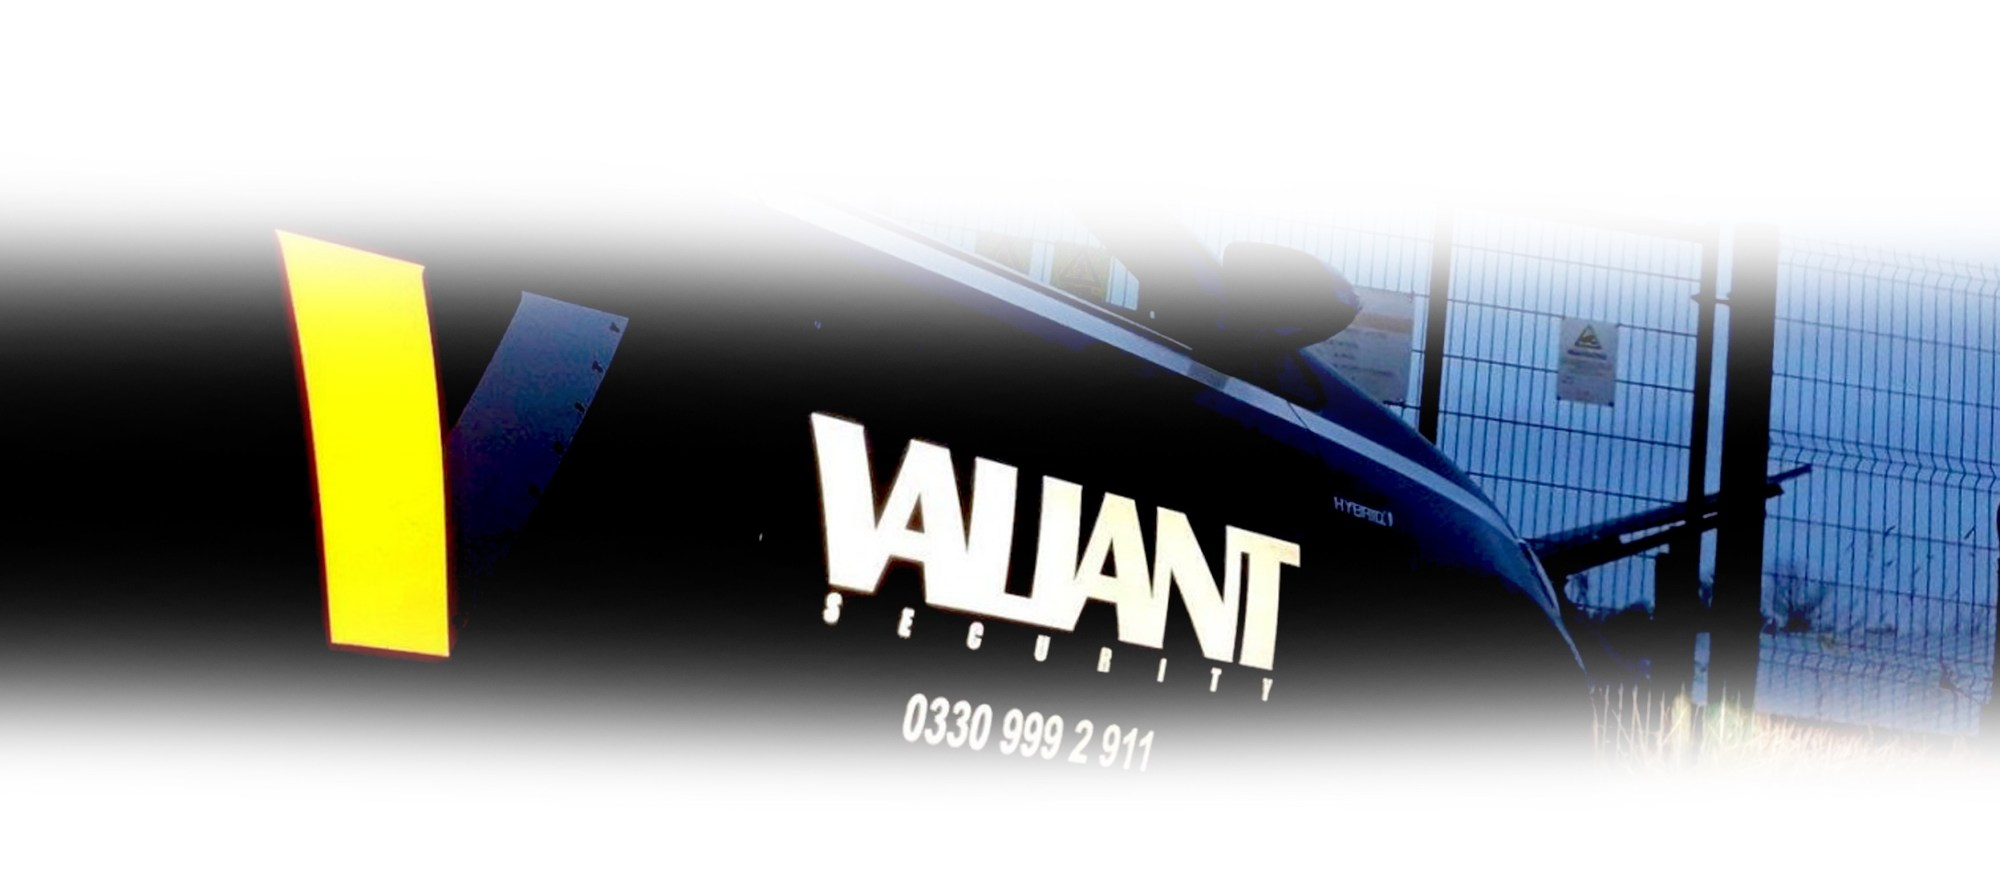 Valiant Security car About us page